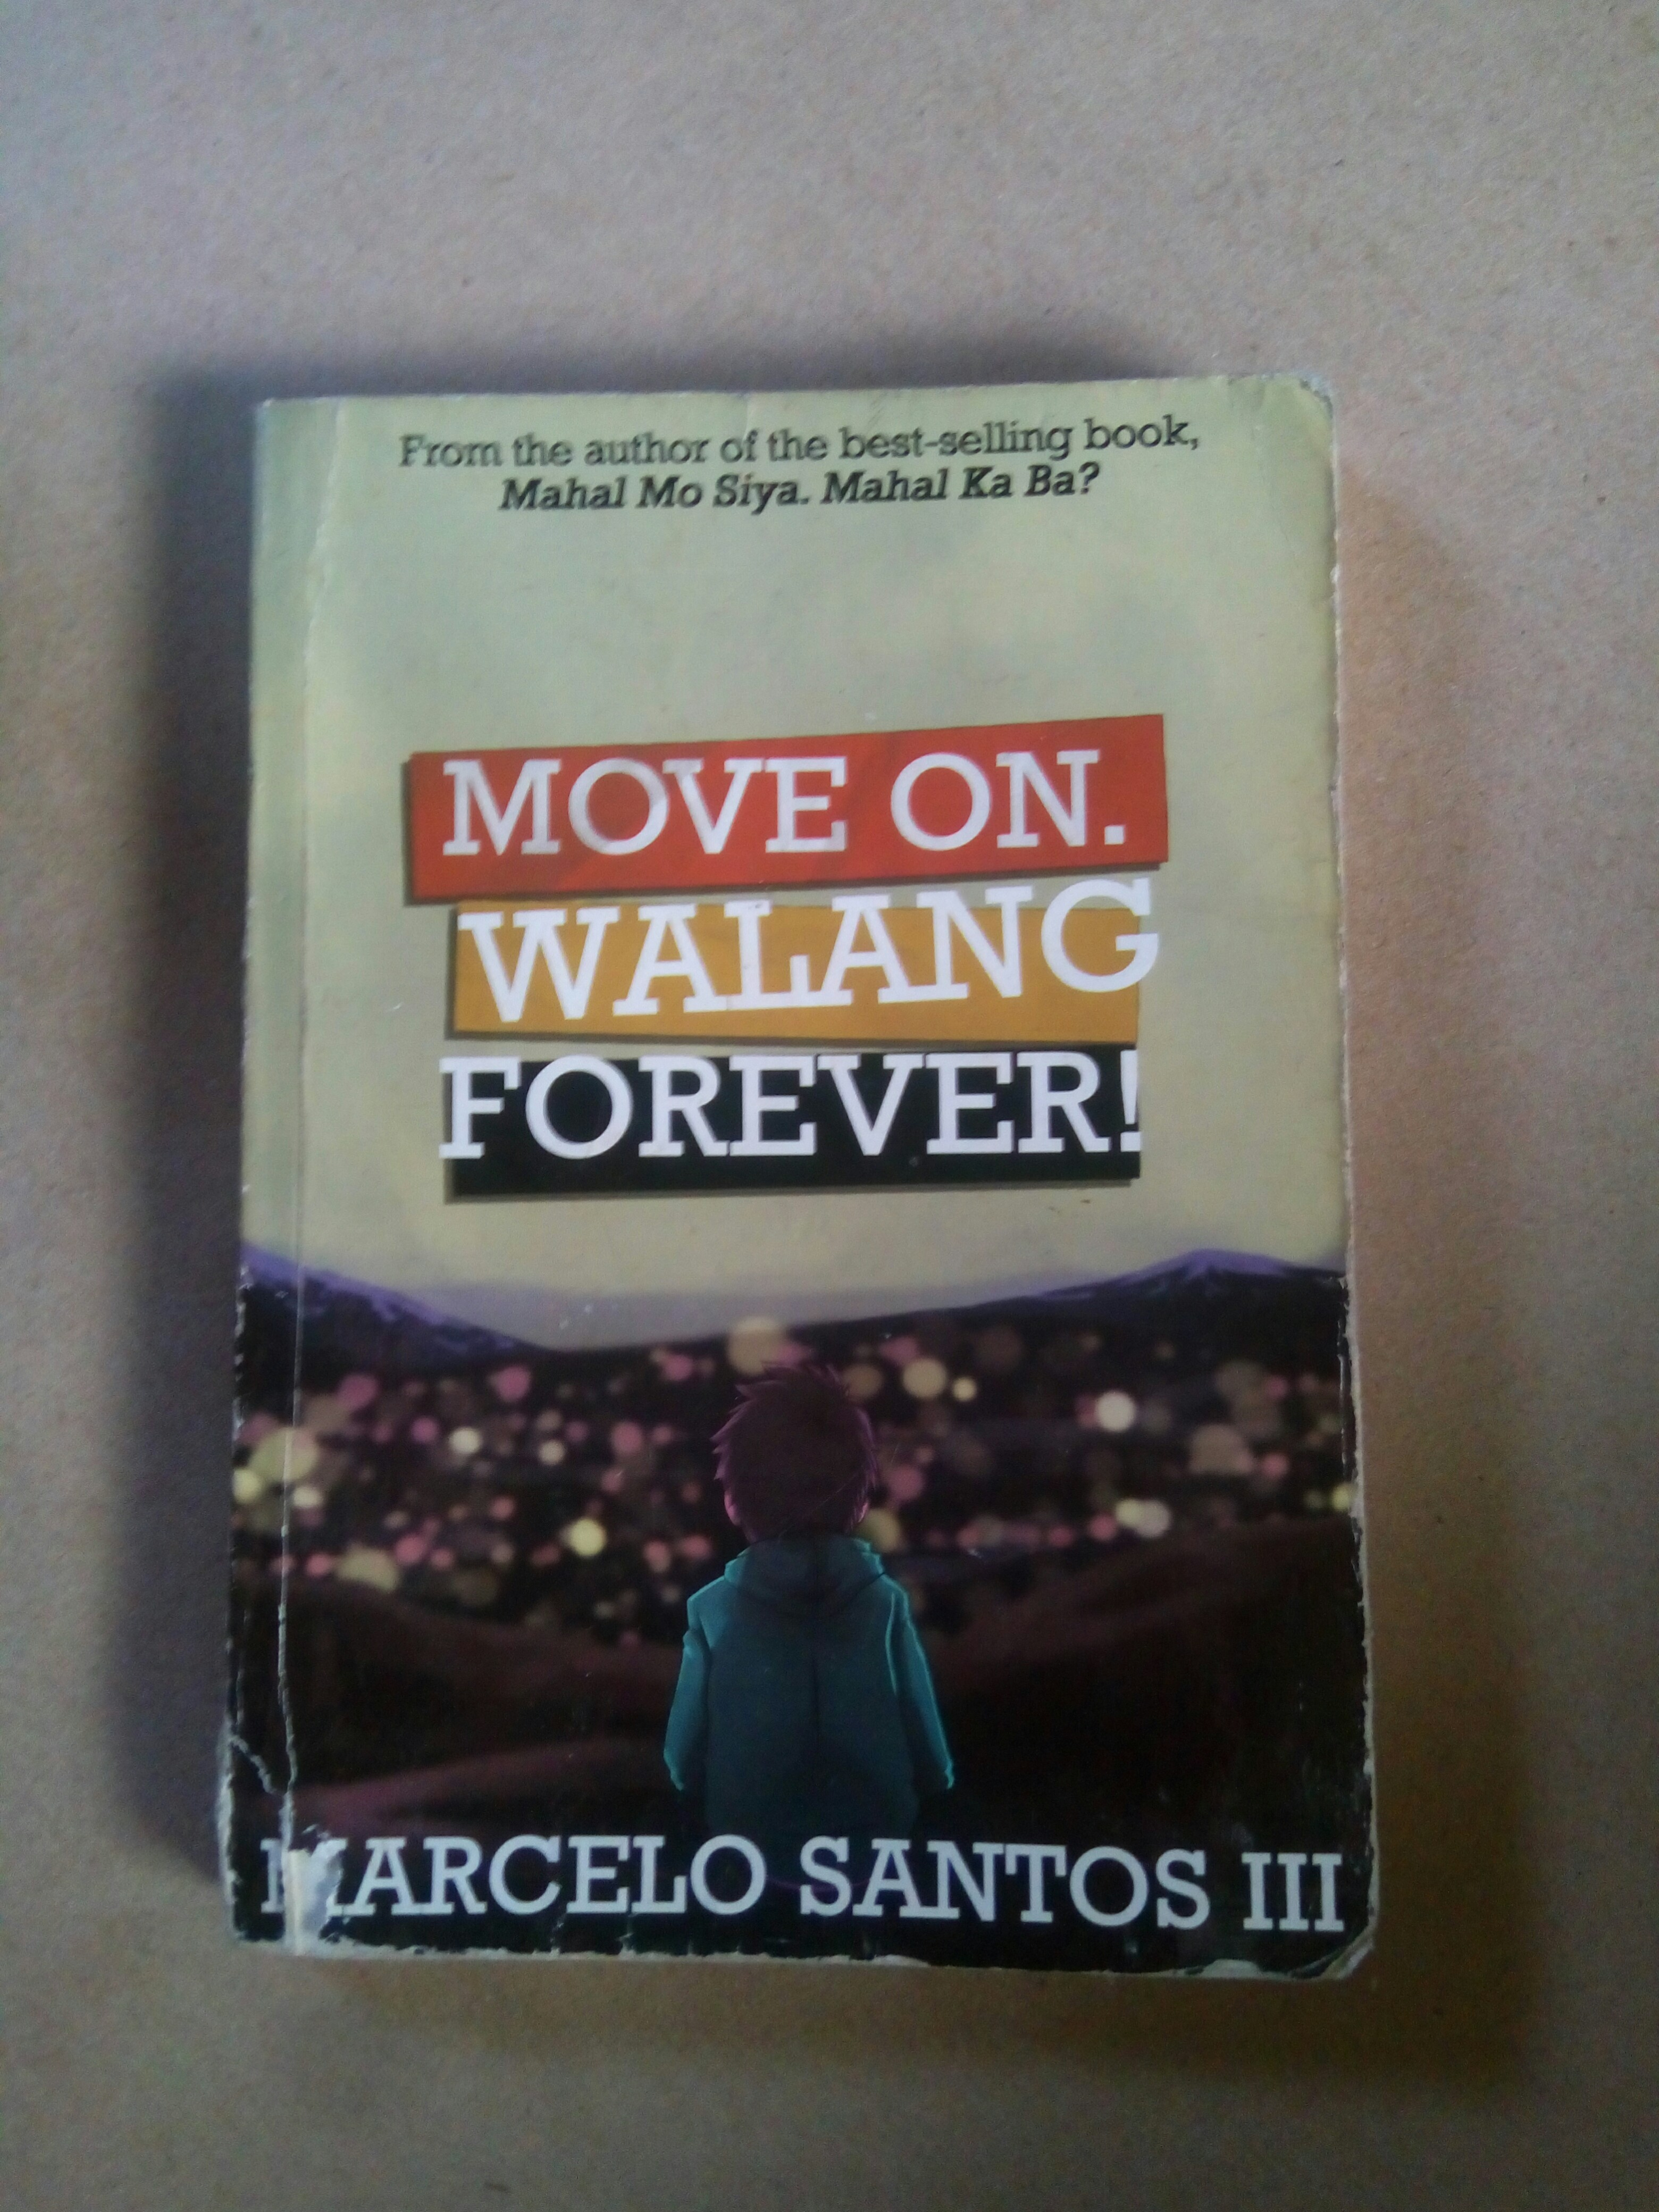 Move on. walang forever!